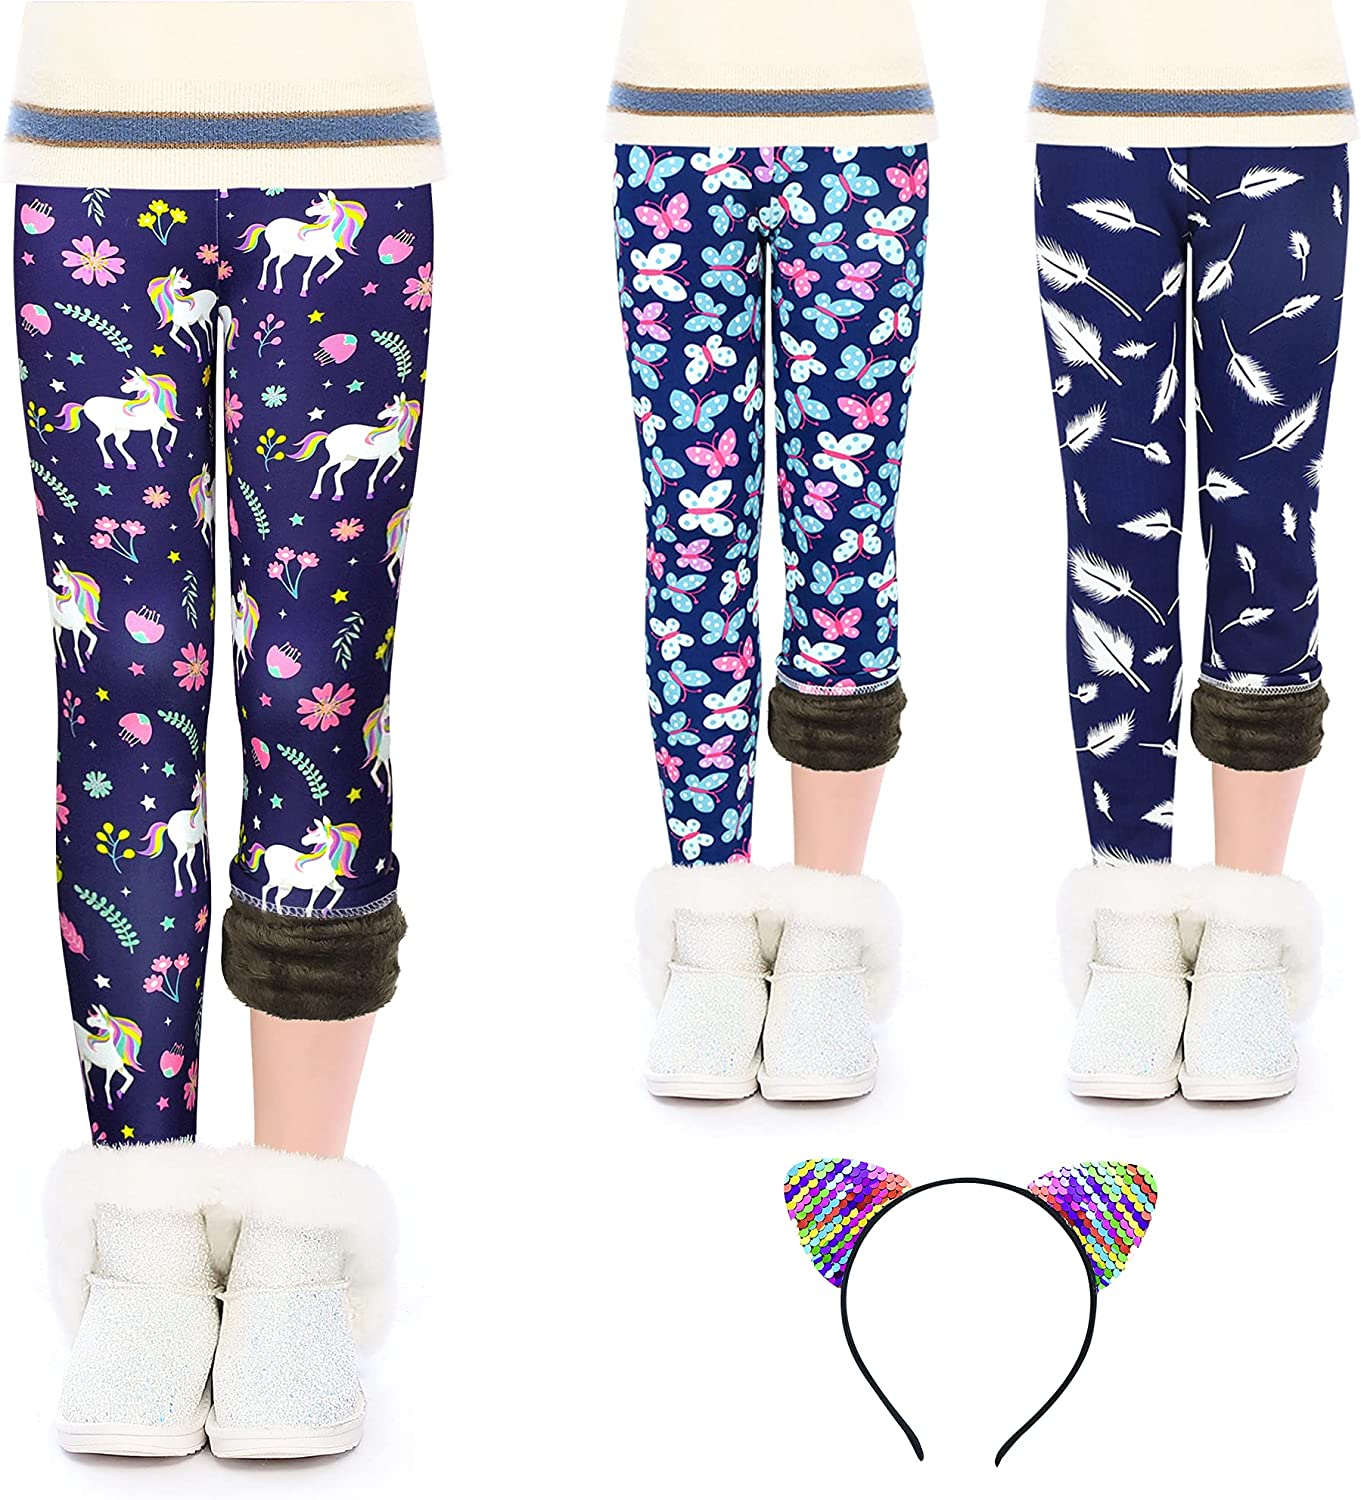 slaixiu Cheap mail order specialty store Warm Girls Max 67% OFF Leggings Fleece Printing K Thick Lined Winter